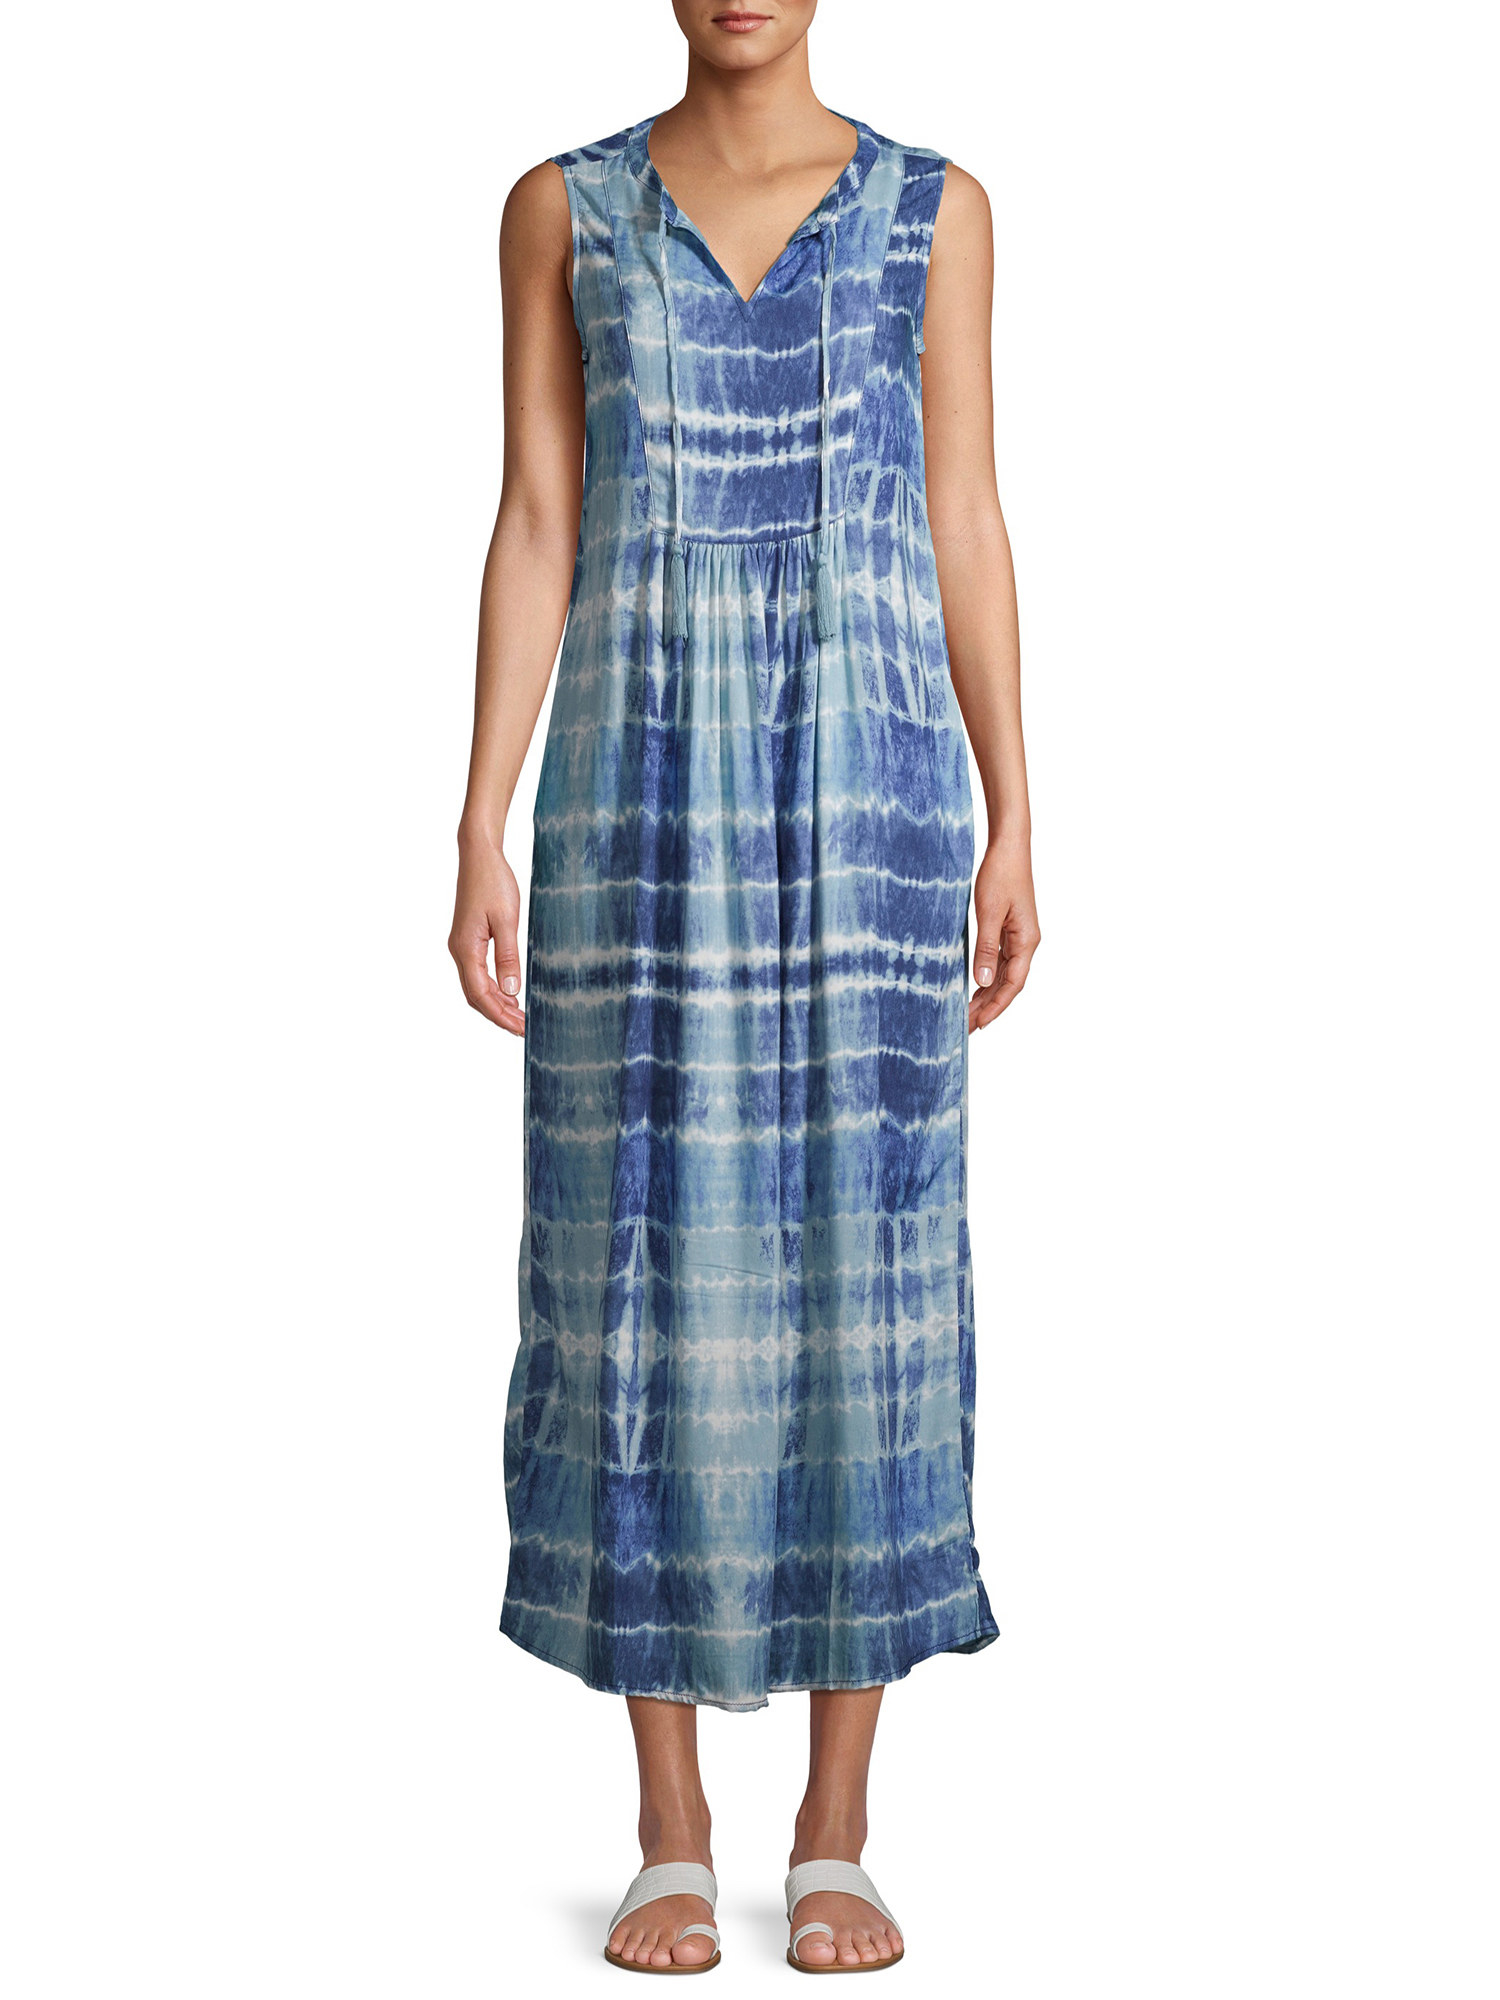 model in a maxi tie dye blue and white striped dress